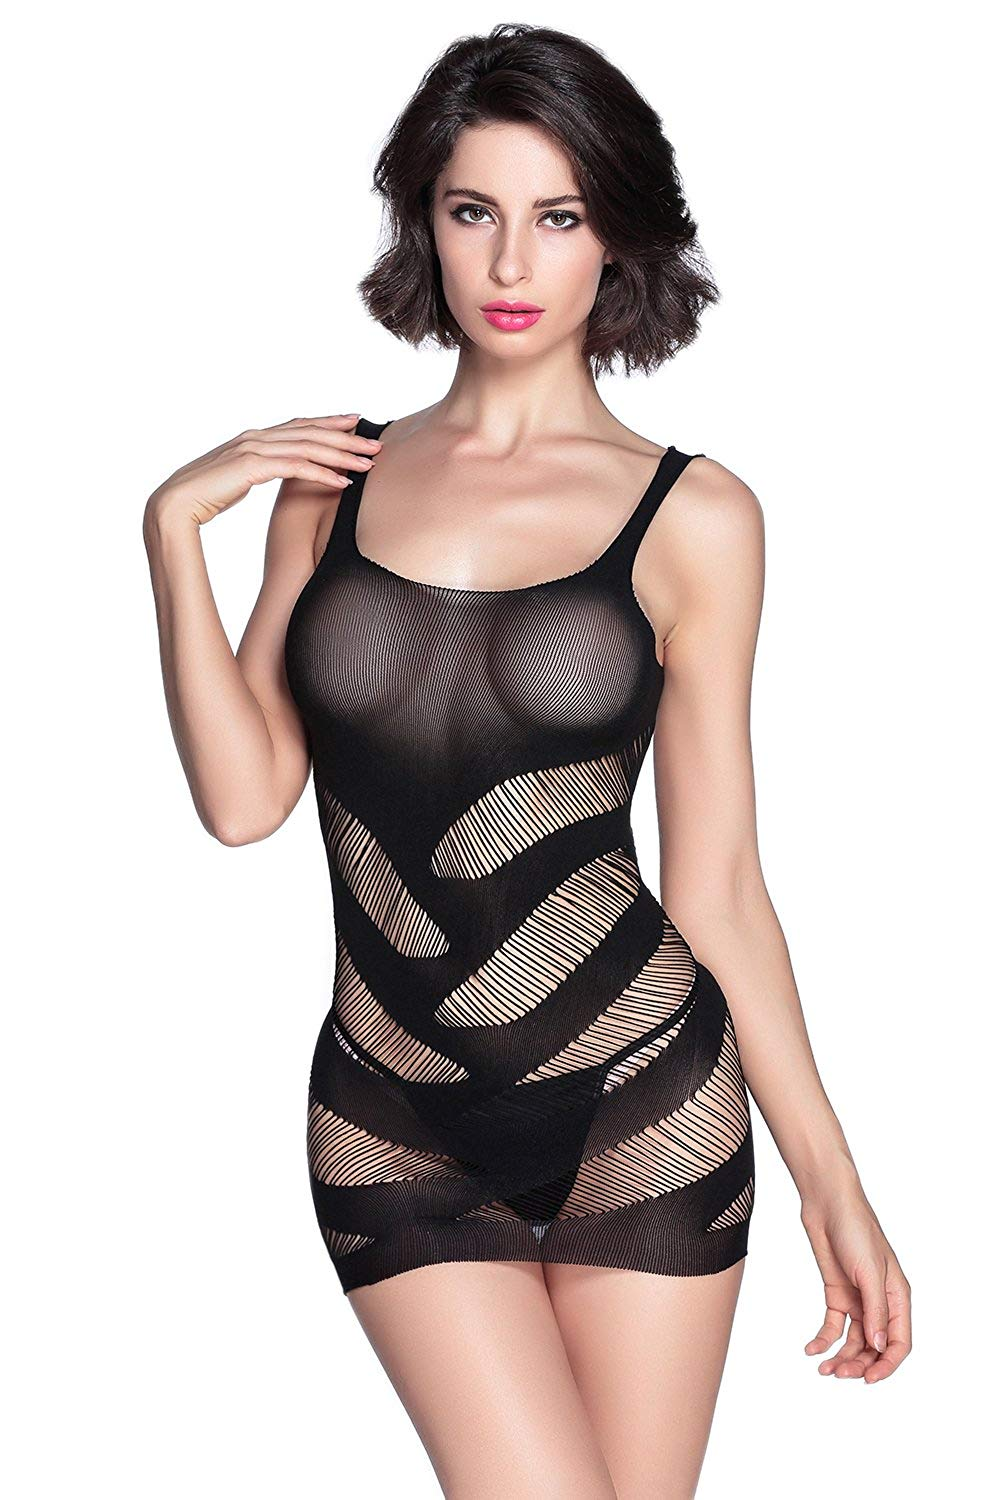 3bbdc0247f2 Get Quotations · TEZUKAFUJI Womens Sexy Camisole Lingerie Striped Cutout  Mini Chemise Dress